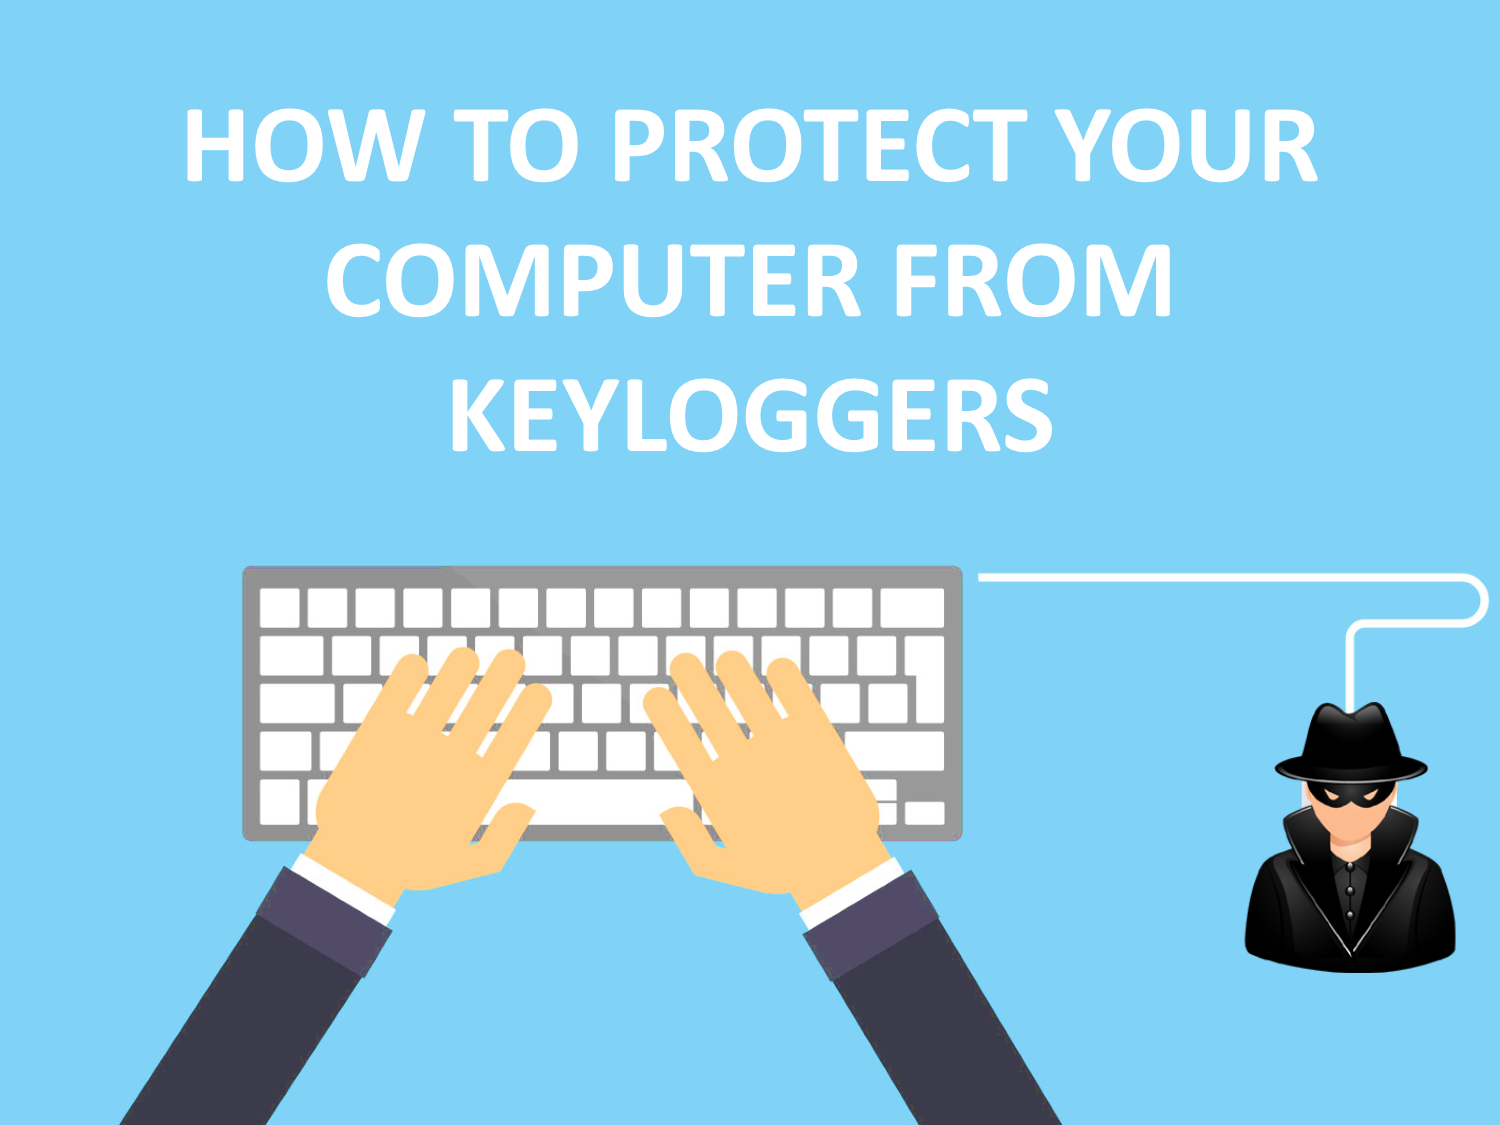 Hackers Can Crack Your Accounts Using Keyloggers - Tech Quark